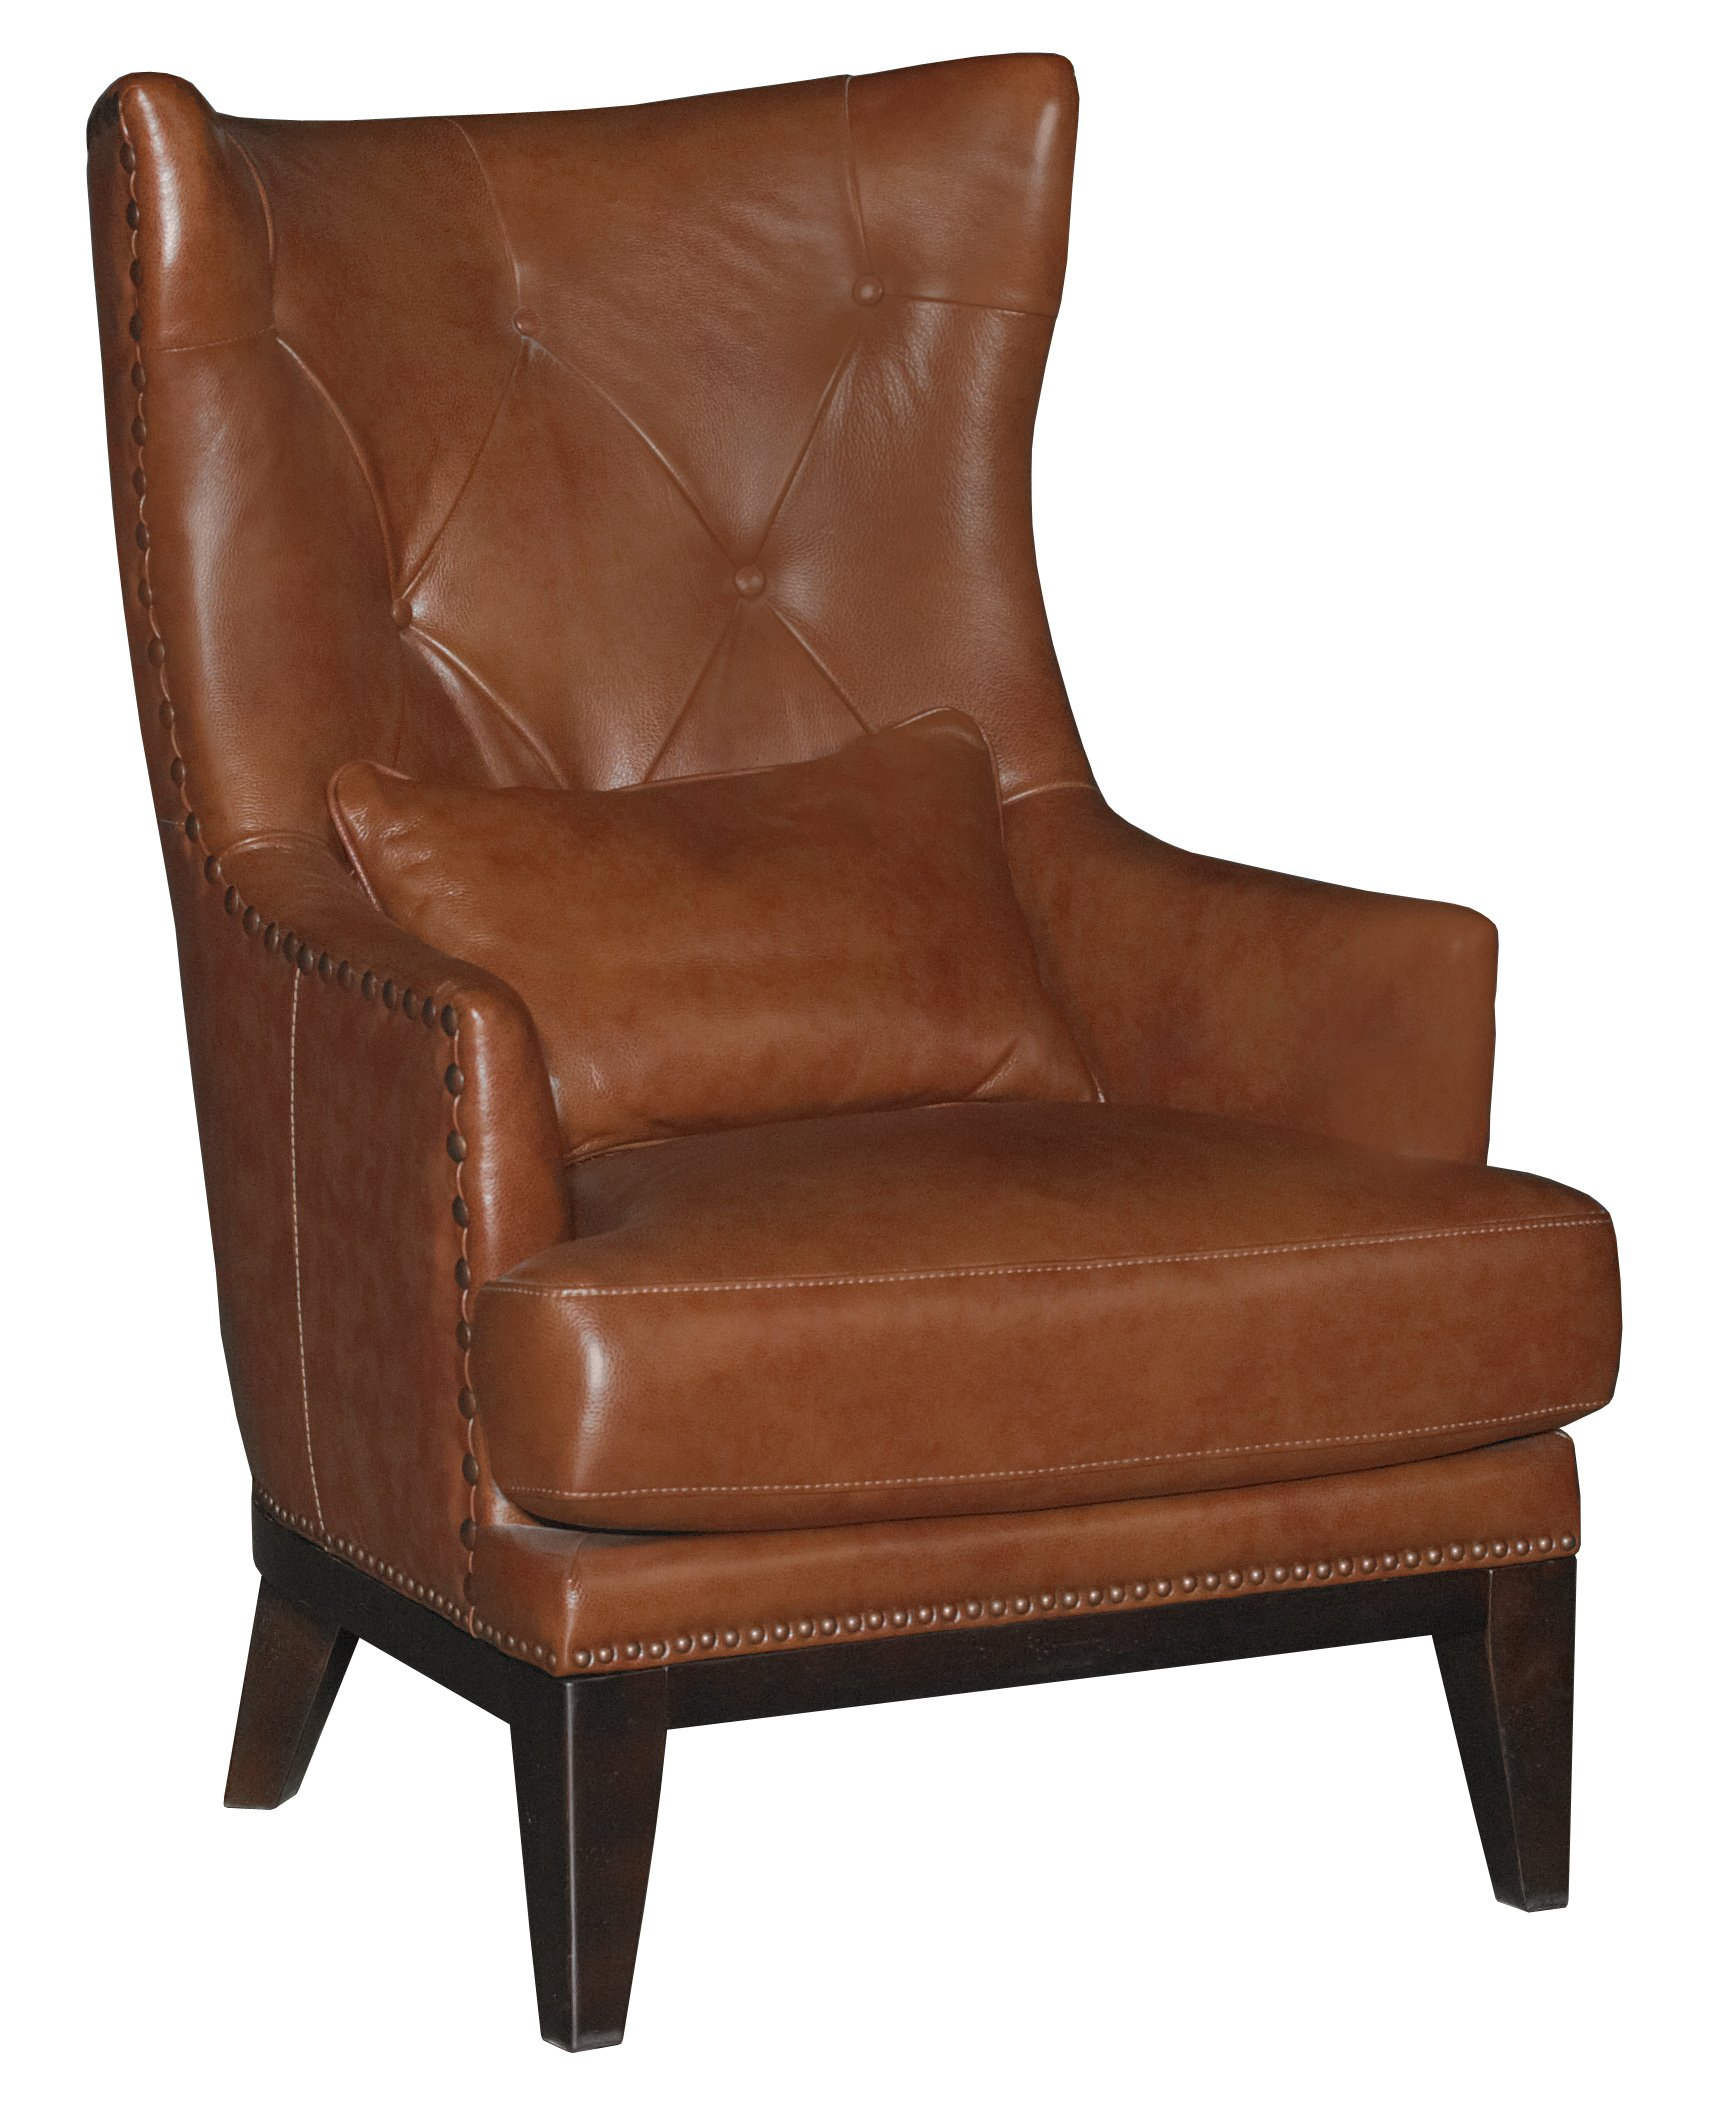 brown accent chairs office chair caster chestnut leather match and ottoman